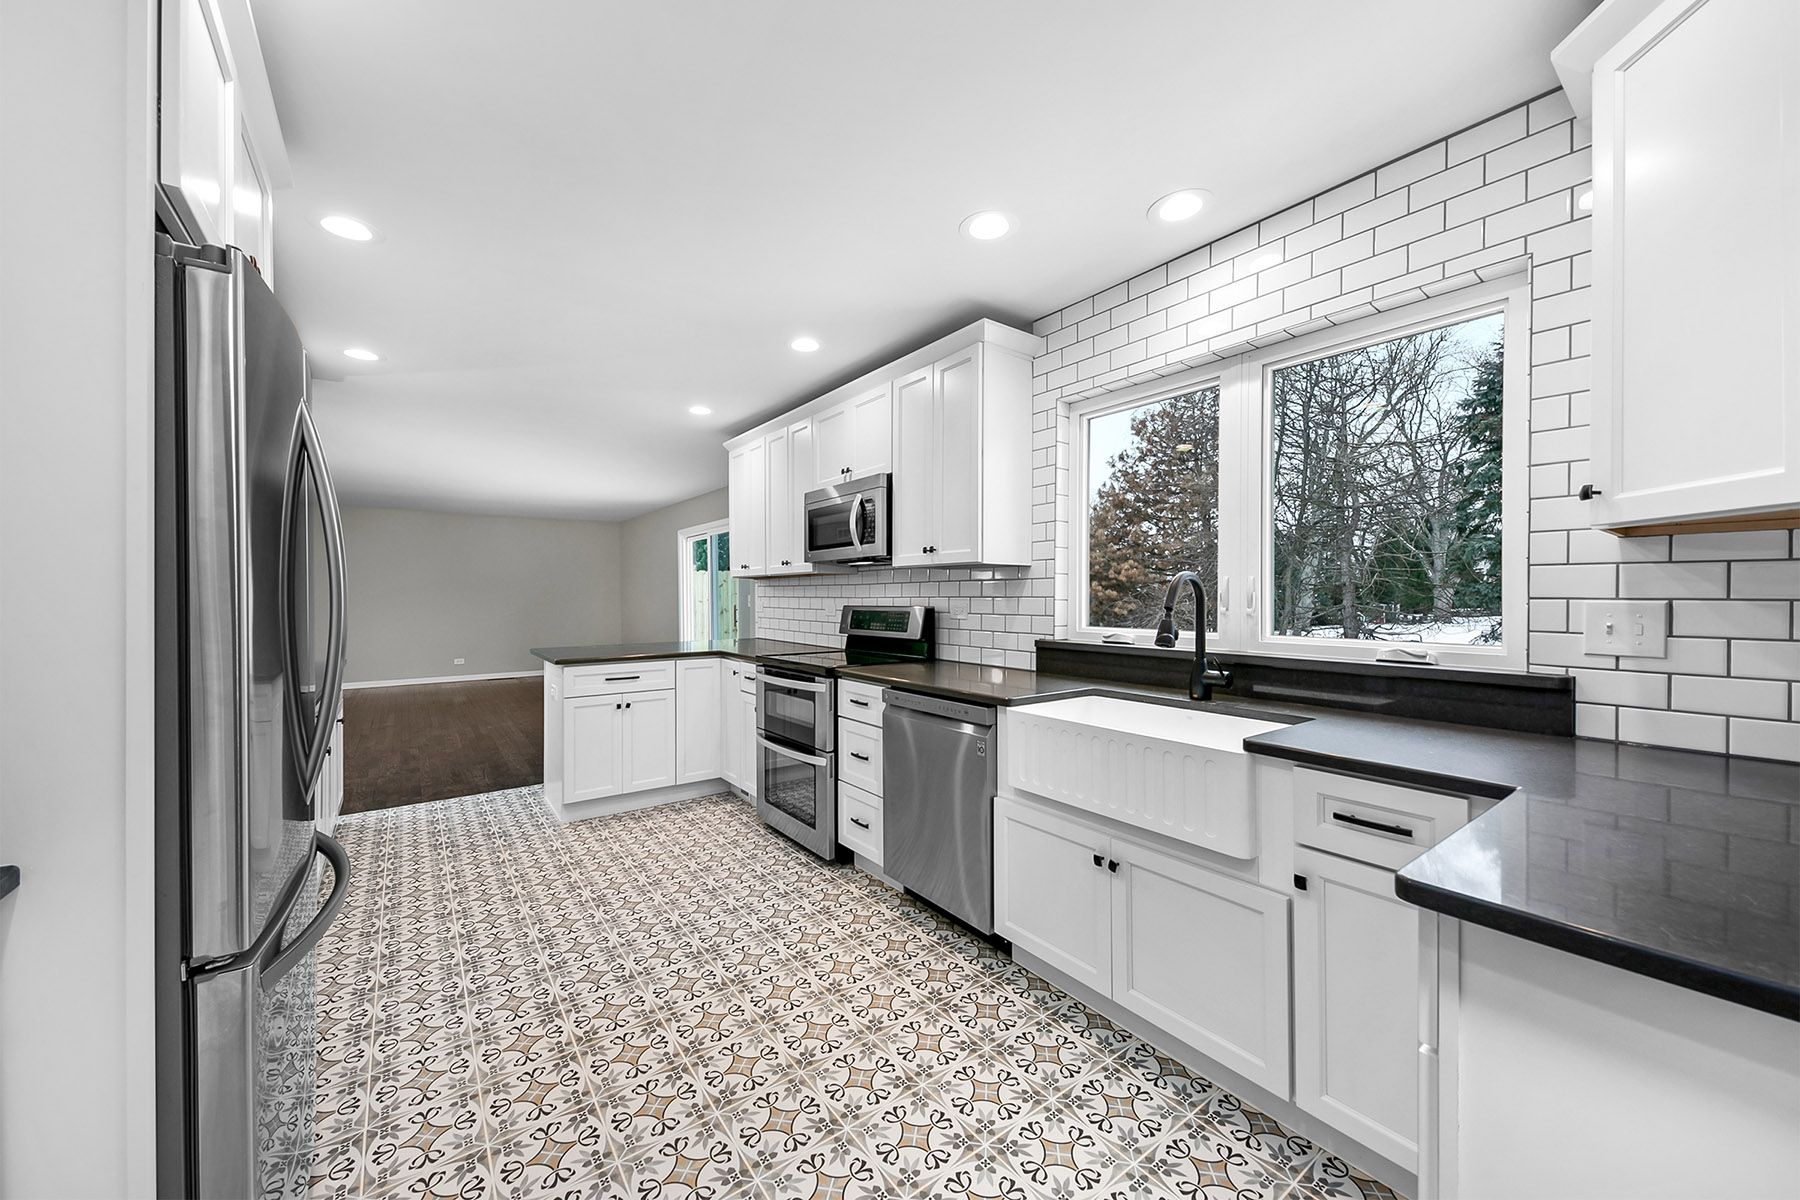 Kitchen White Cabinets With Gray Mist Quartz Counter Tops And Decorative Floor Tile Decorative Floor Tile Kitchen White Kitchen Cabinets